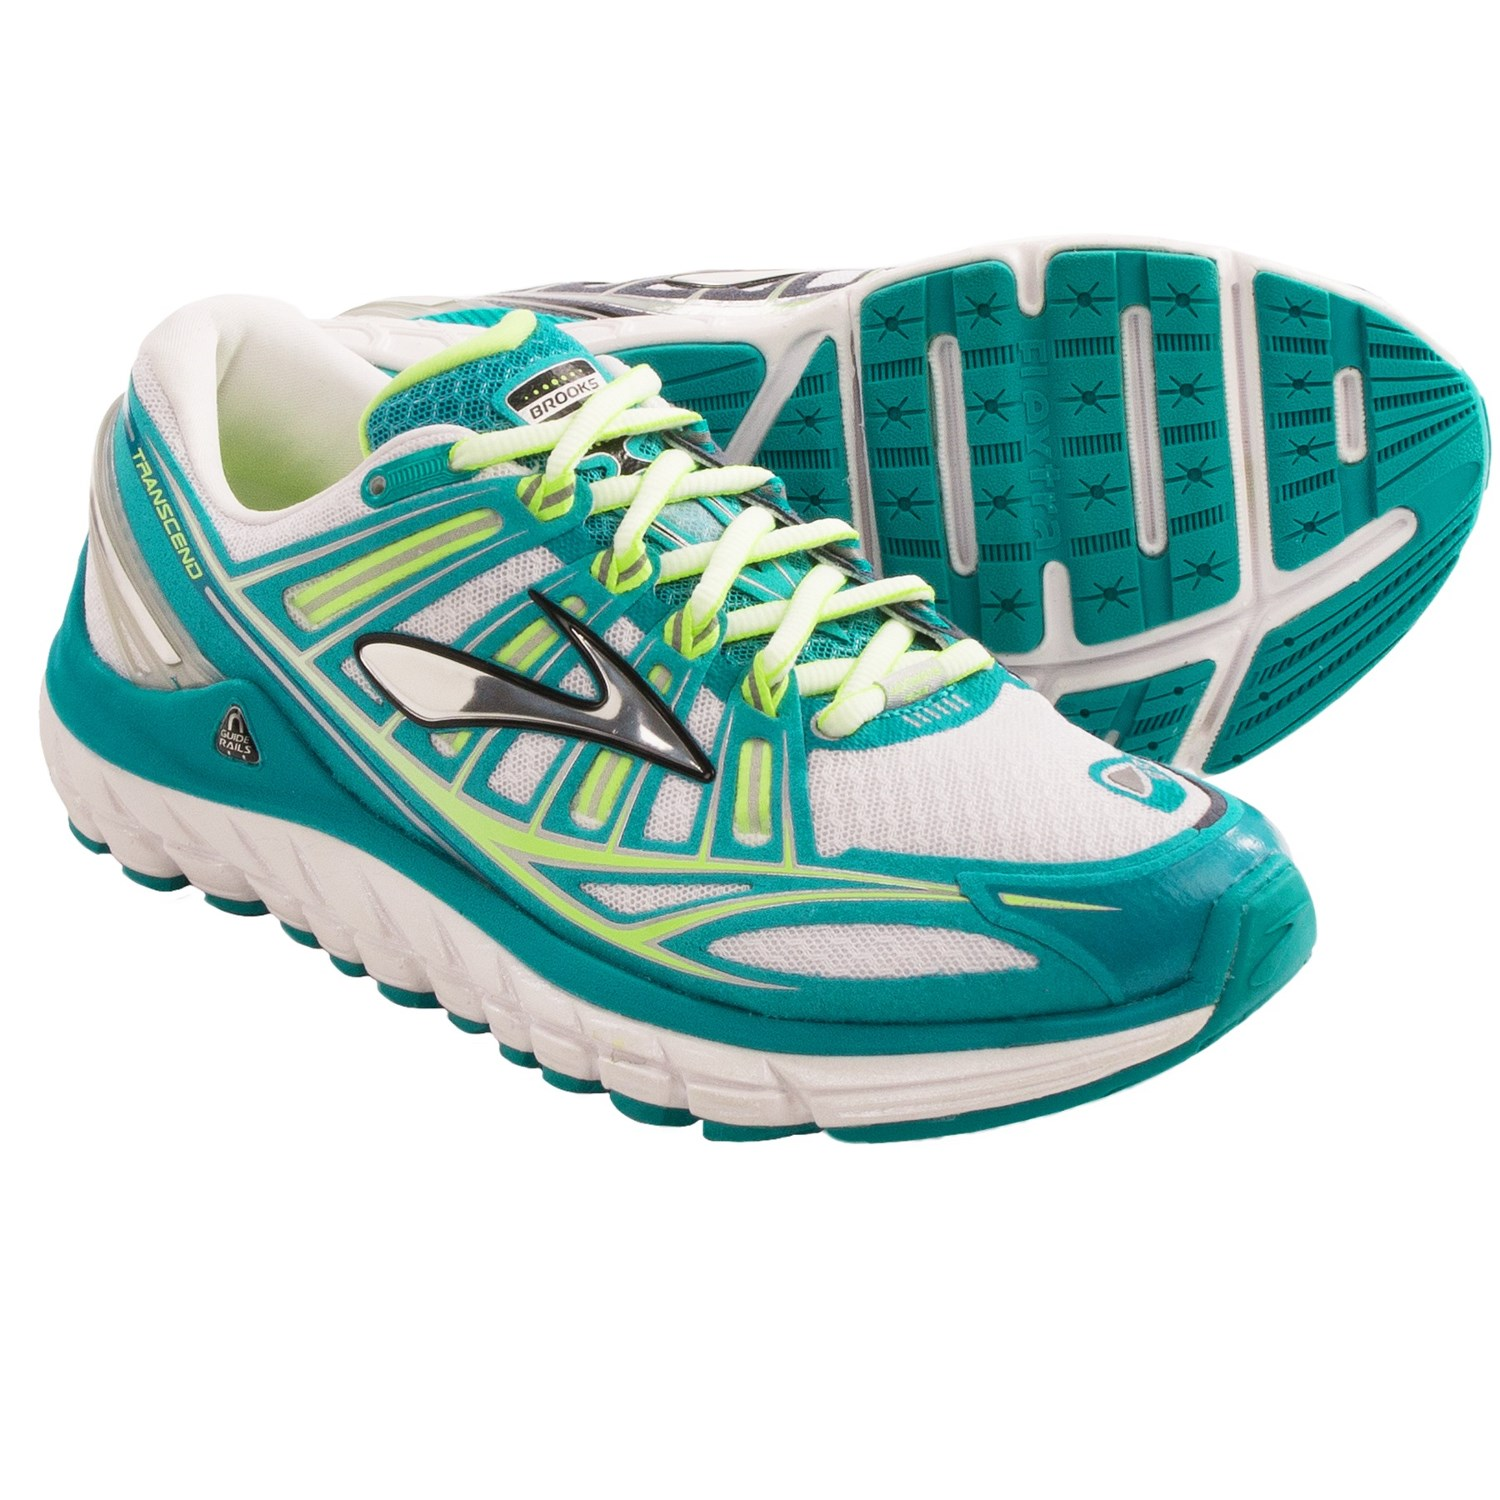 Brooks Womens Running Shoes Clearance | Summer Sports Sandals